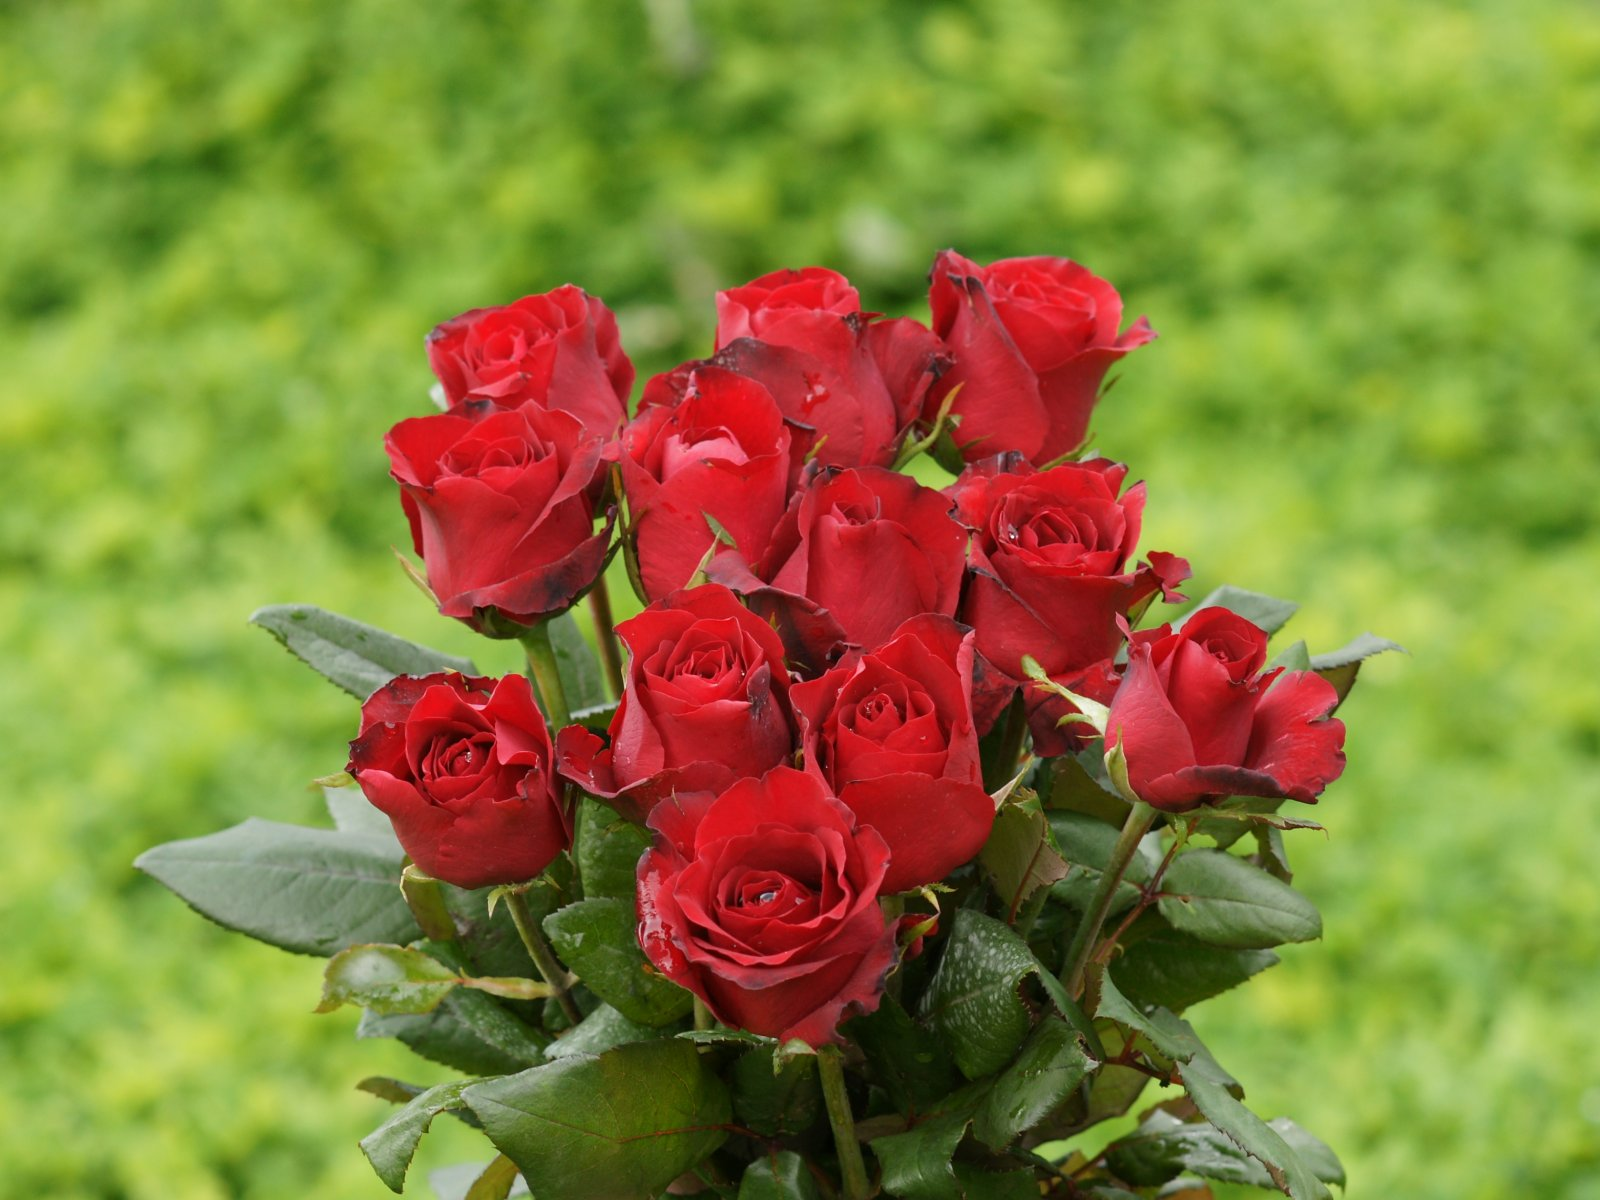 Roses images beautiful red roses hd wallpaper and background photos roses images beautiful red roses hd wallpaper and background photos izmirmasajfo